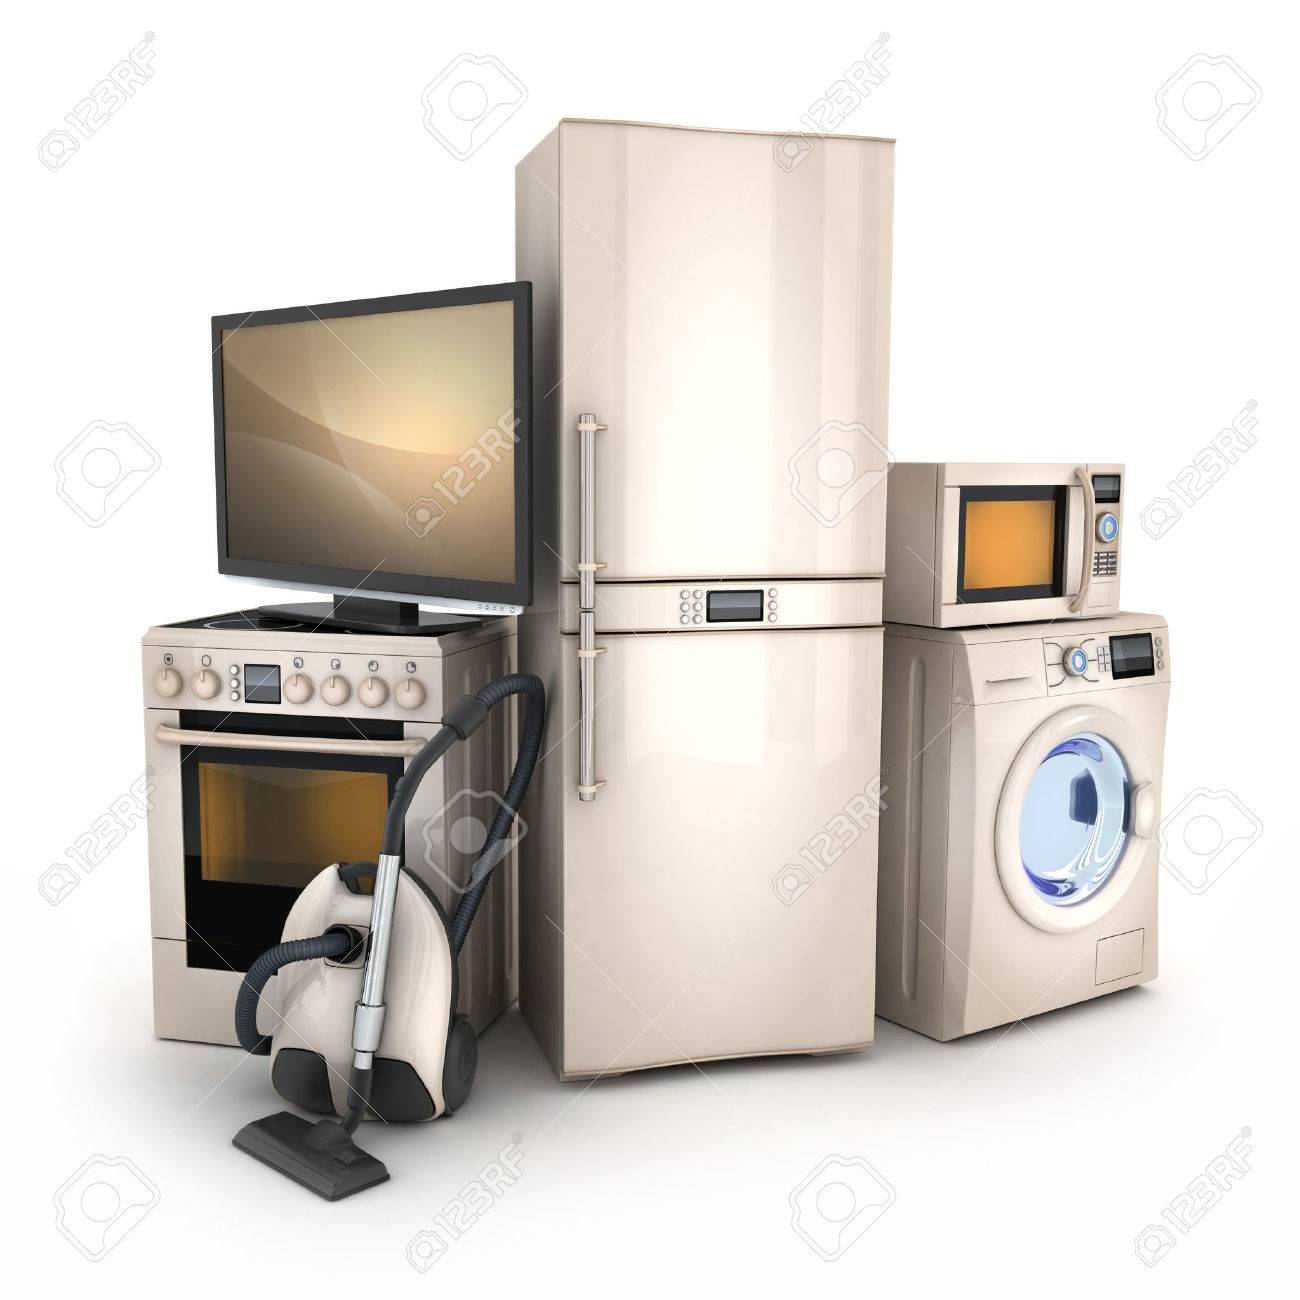 Consumer electronics.TV,Fridge,vacuum cleaner,microwave,washer and electric-cooker - 34105435